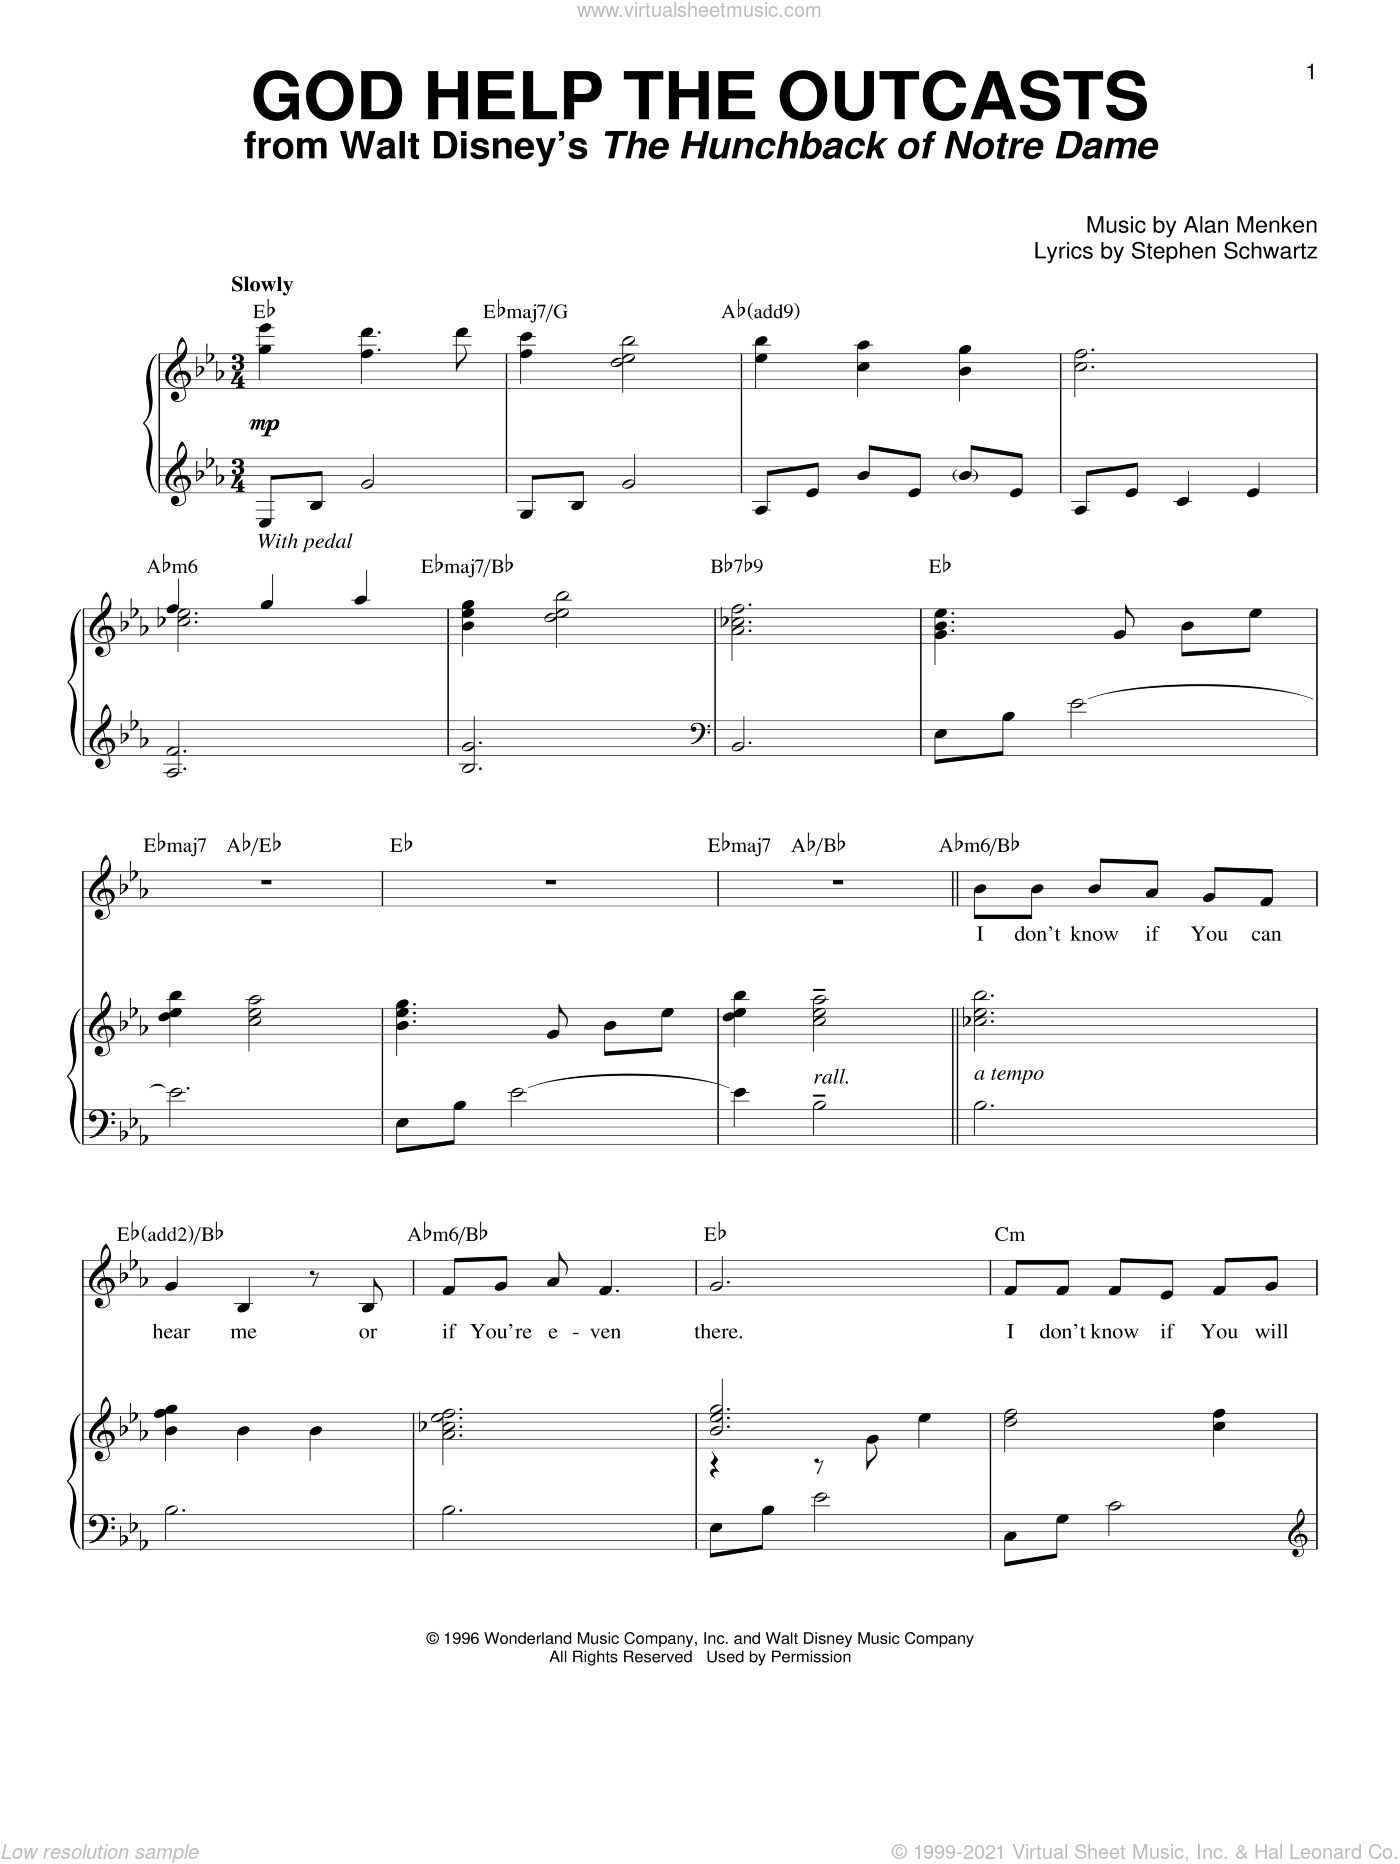 God Help The Outcasts sheet music for voice and piano by Bette Midler, Alan Menken and Stephen Schwartz, intermediate skill level